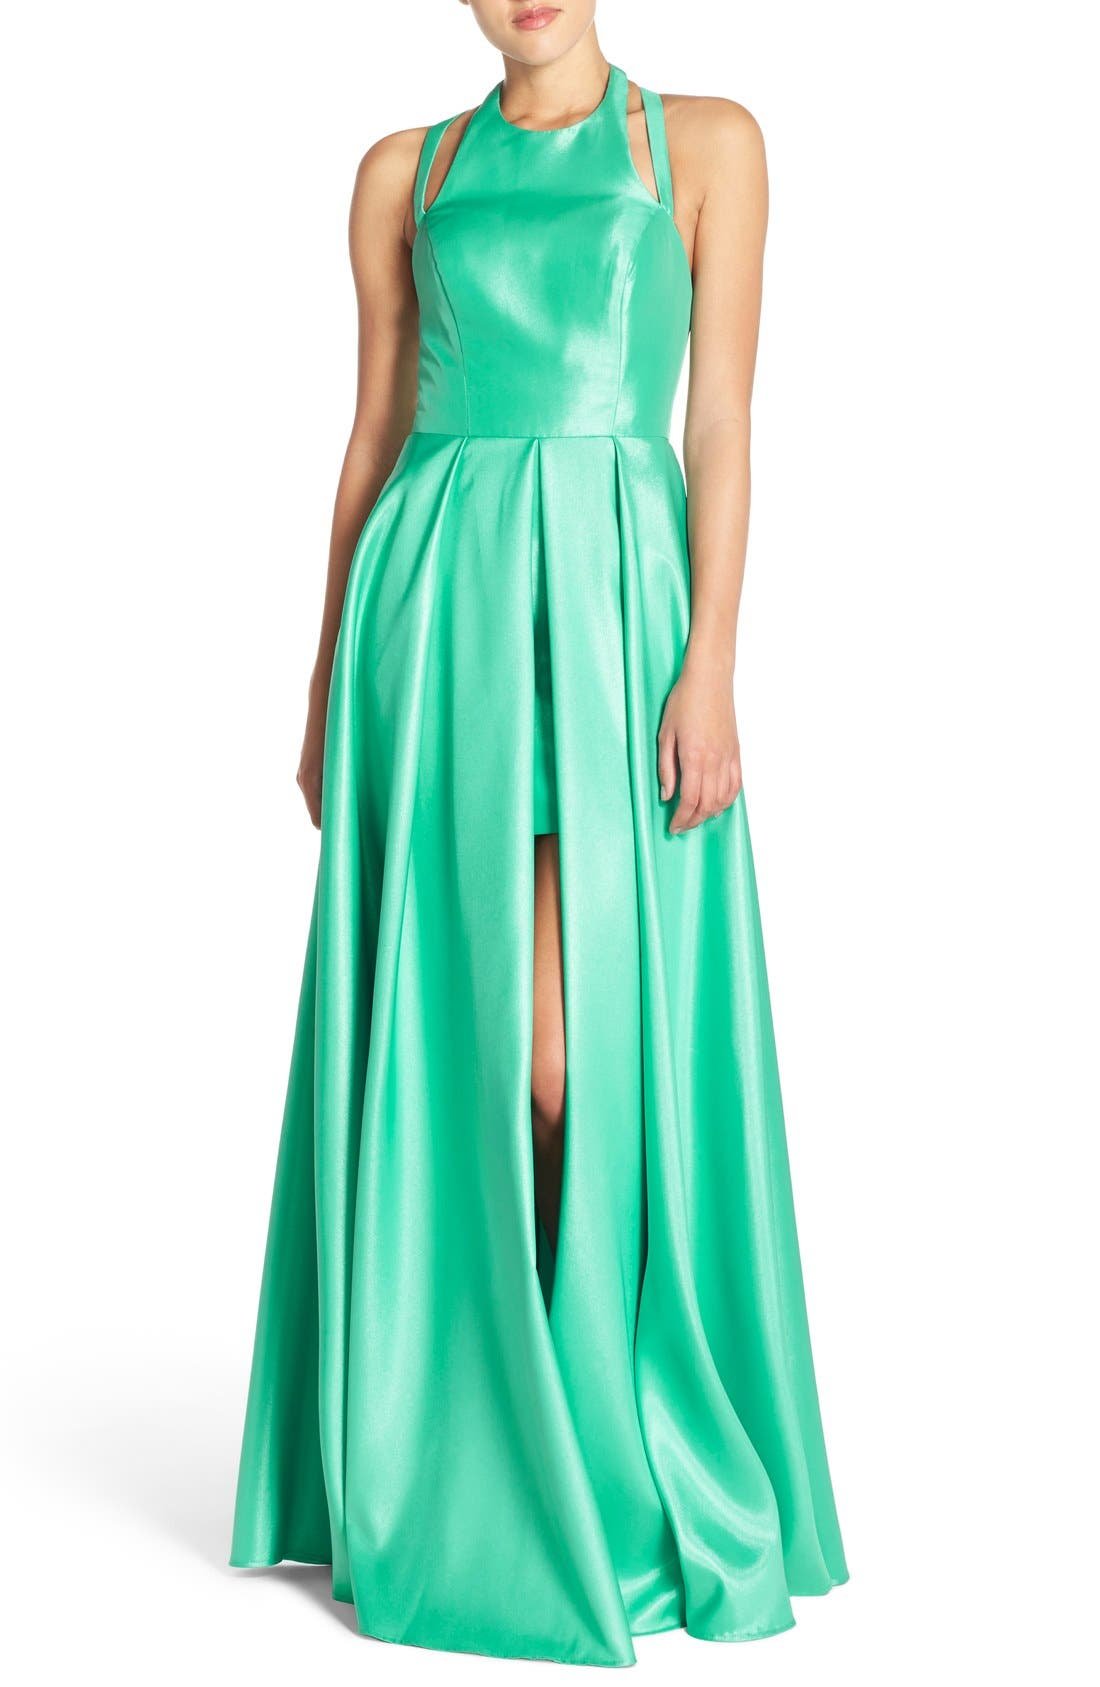 Shimmer Satin Halter Gown with Underskirt,                             Main thumbnail 1, color,                             Spearmint